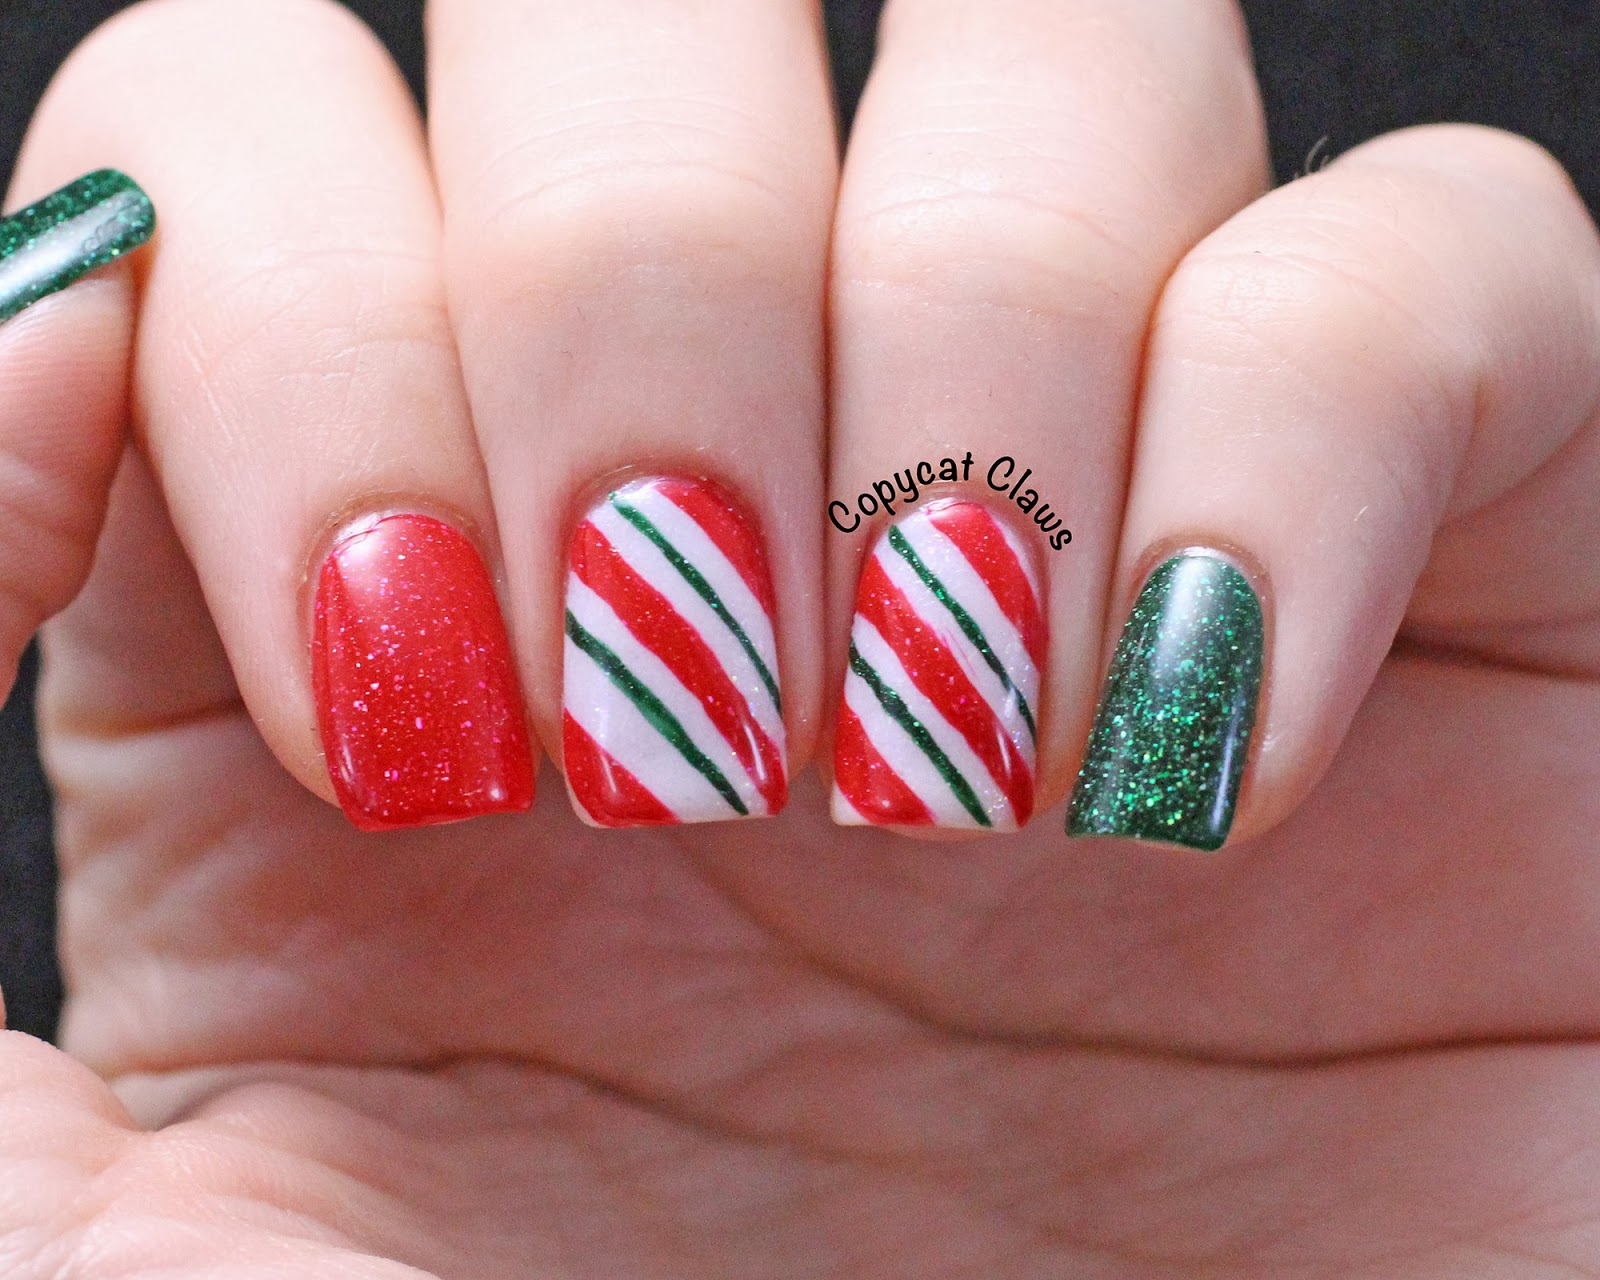 Copycat claws picture polish candy cane nail art i wanted to use picture polish kryptonite ohara and white wedding together because i thought they made the perfect christmas combo prinsesfo Choice Image